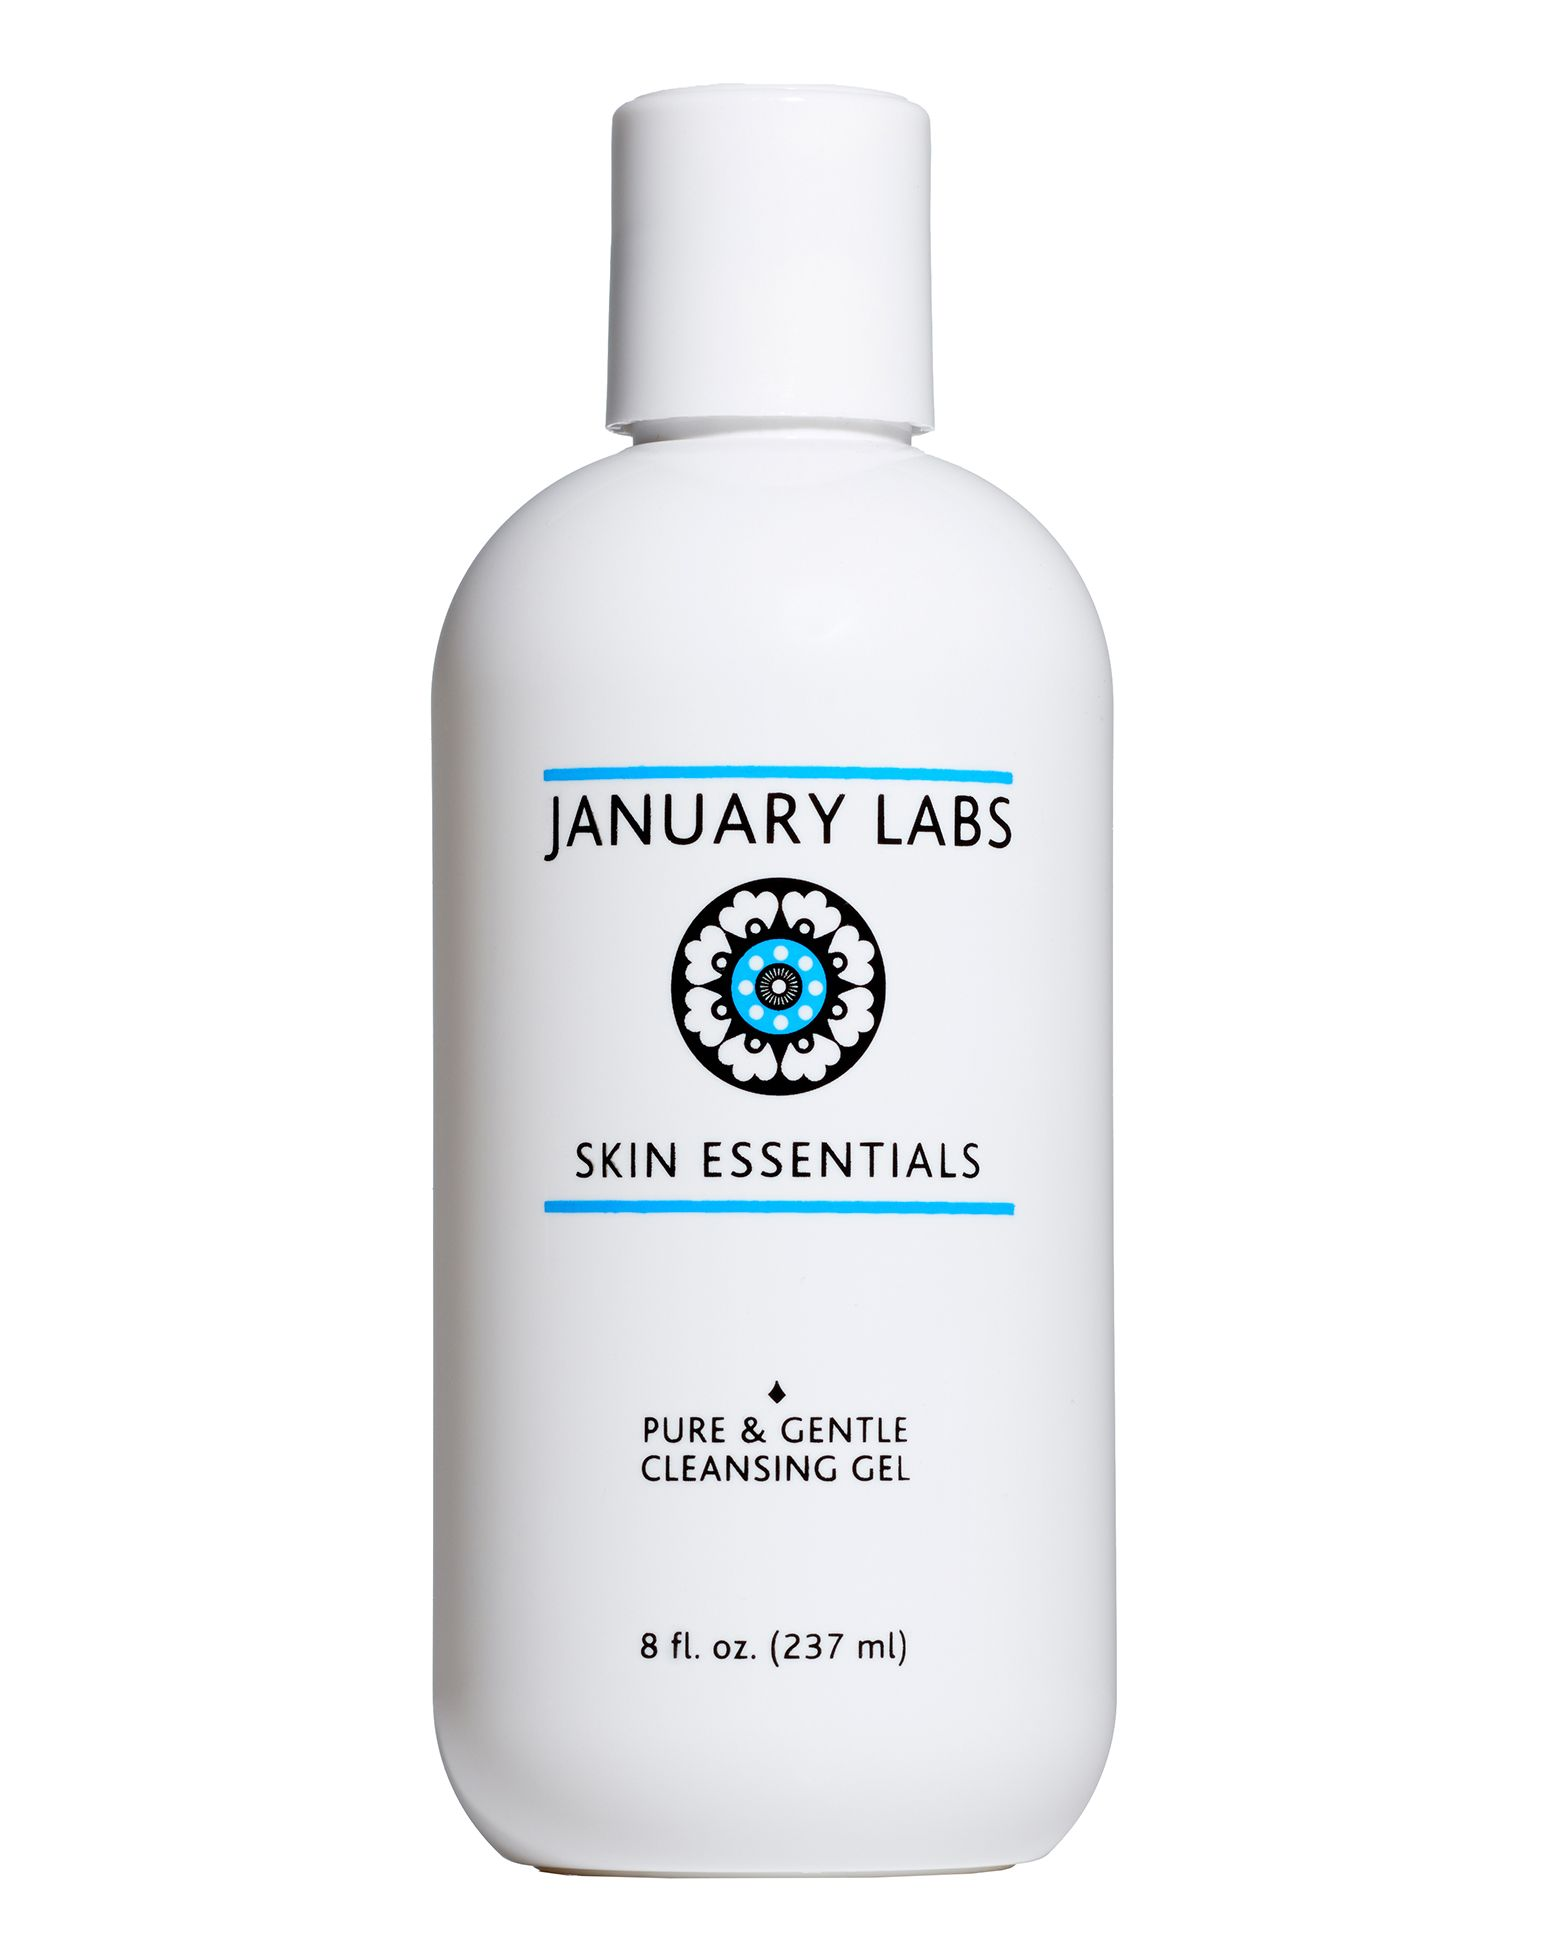 Pure & Gentle Cleansing Gel by January Labs